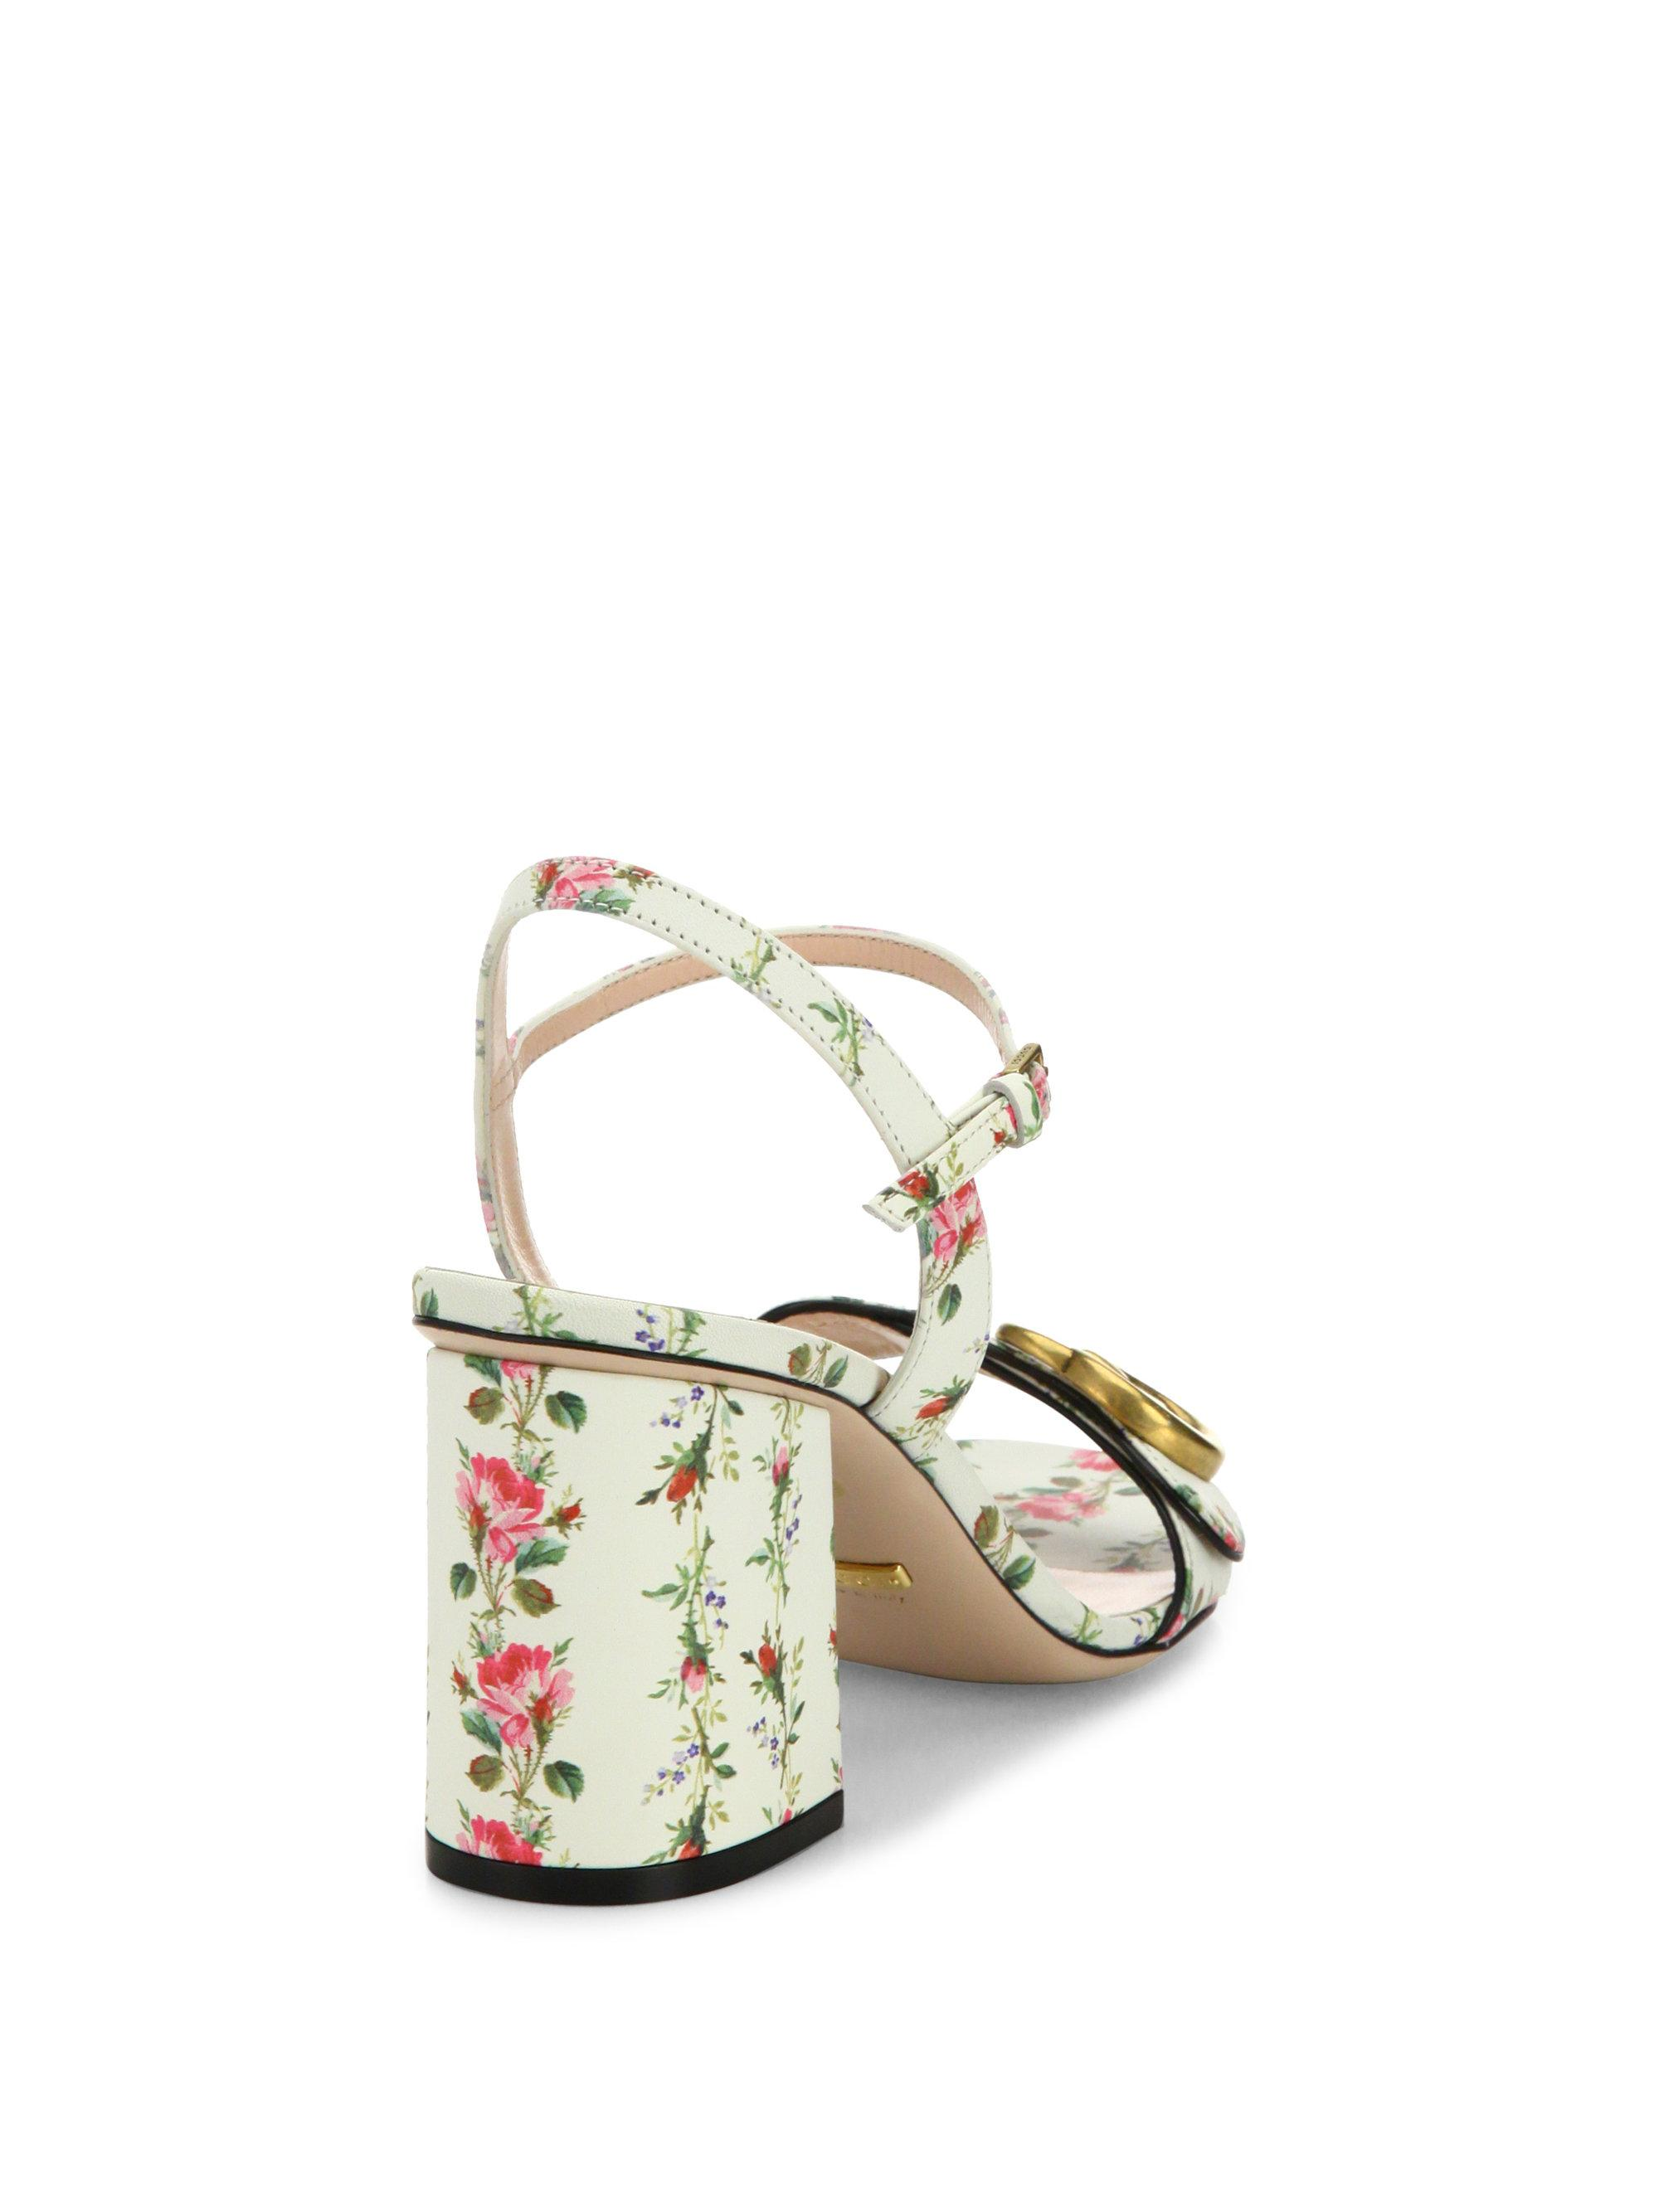 72f20dd1fd51 Lyst - Gucci Floral-print Leather Sandals in White